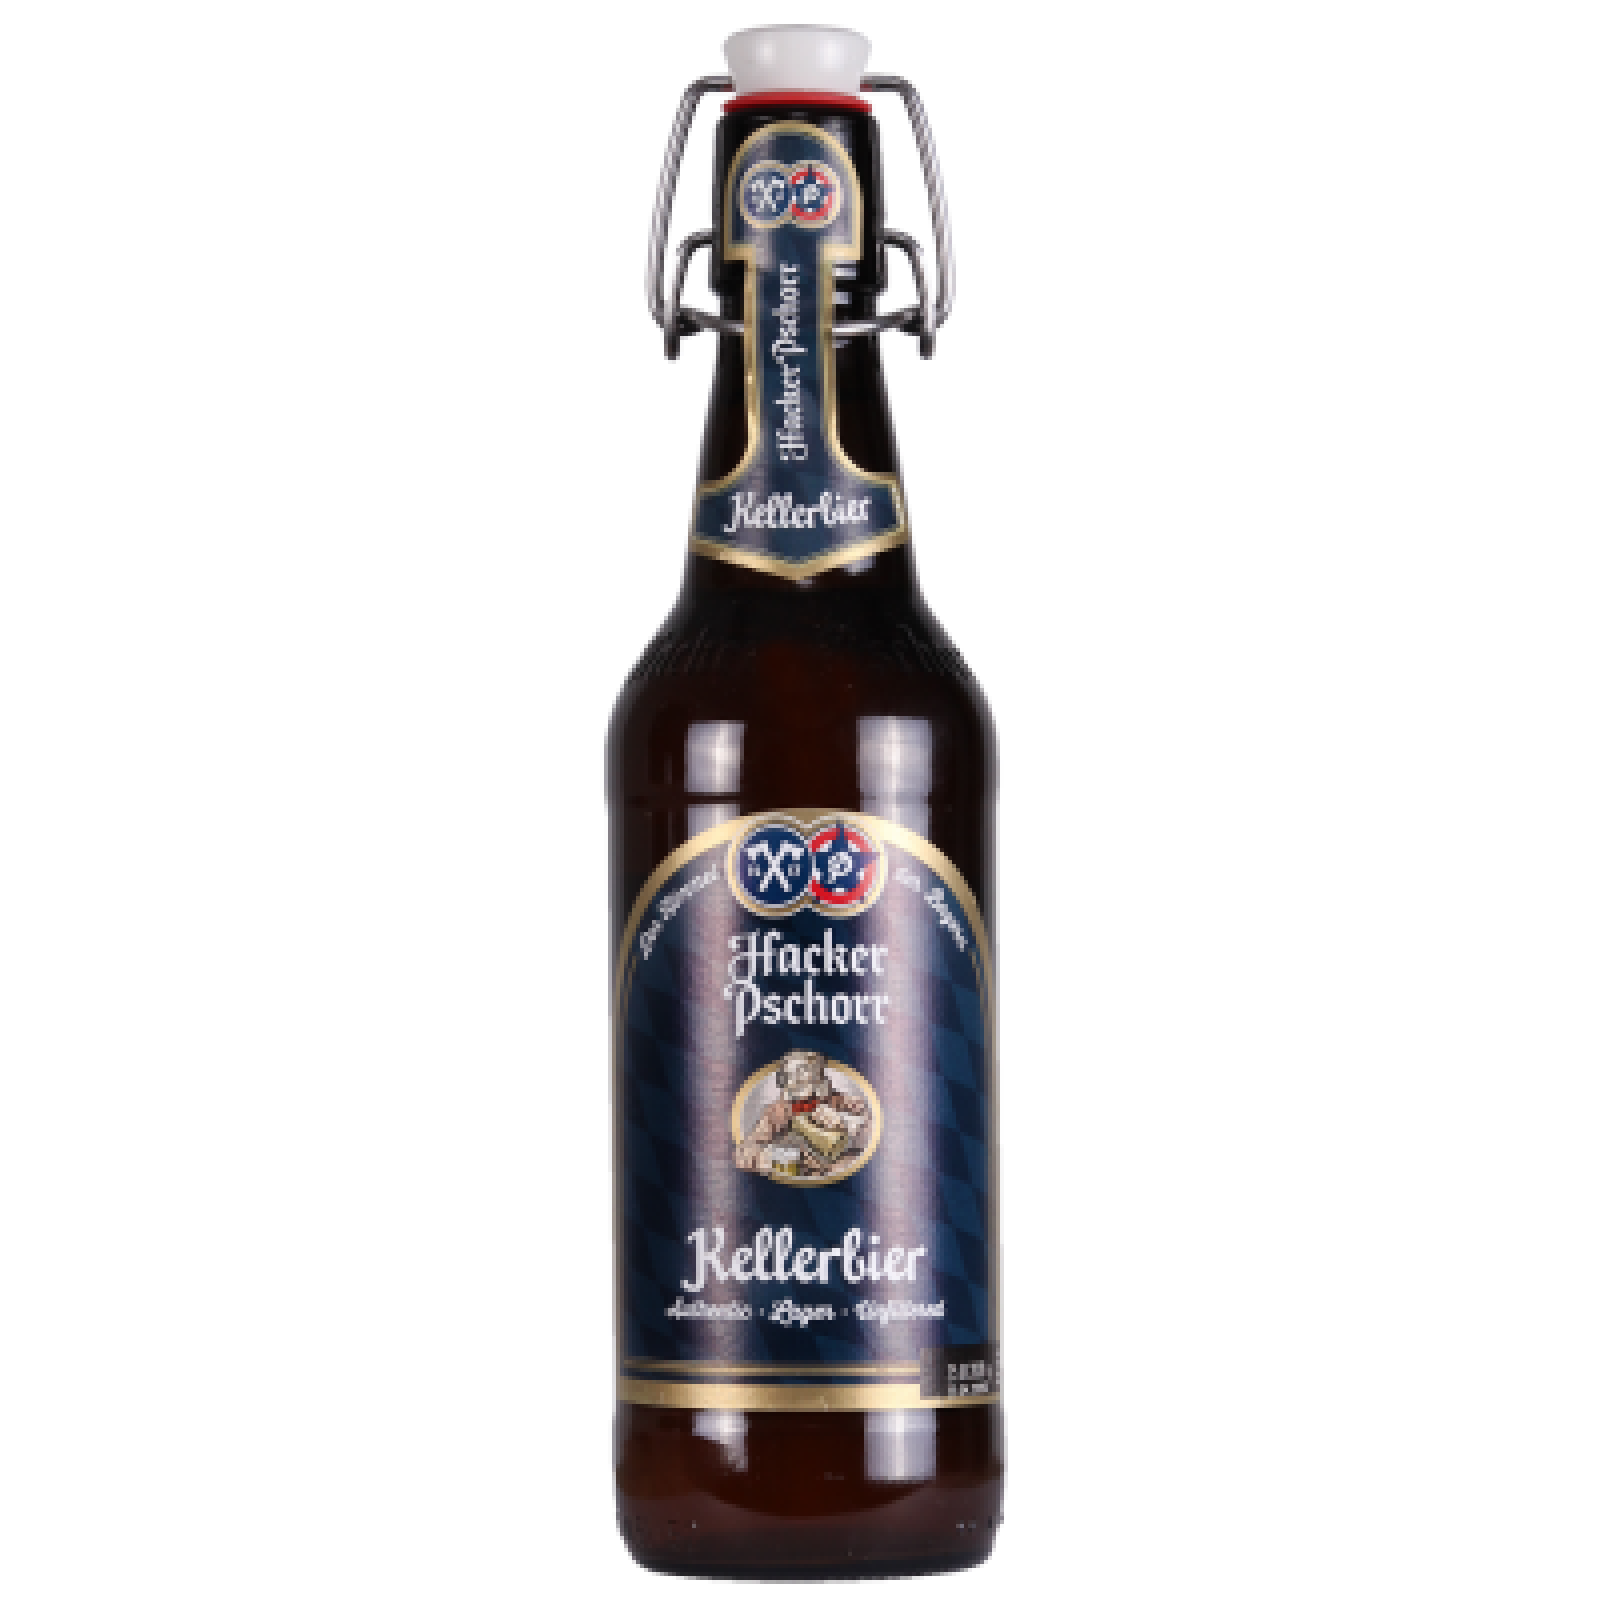 Hacker-Pschorr Anno 1417 Kellerbier 5.5% 500ml